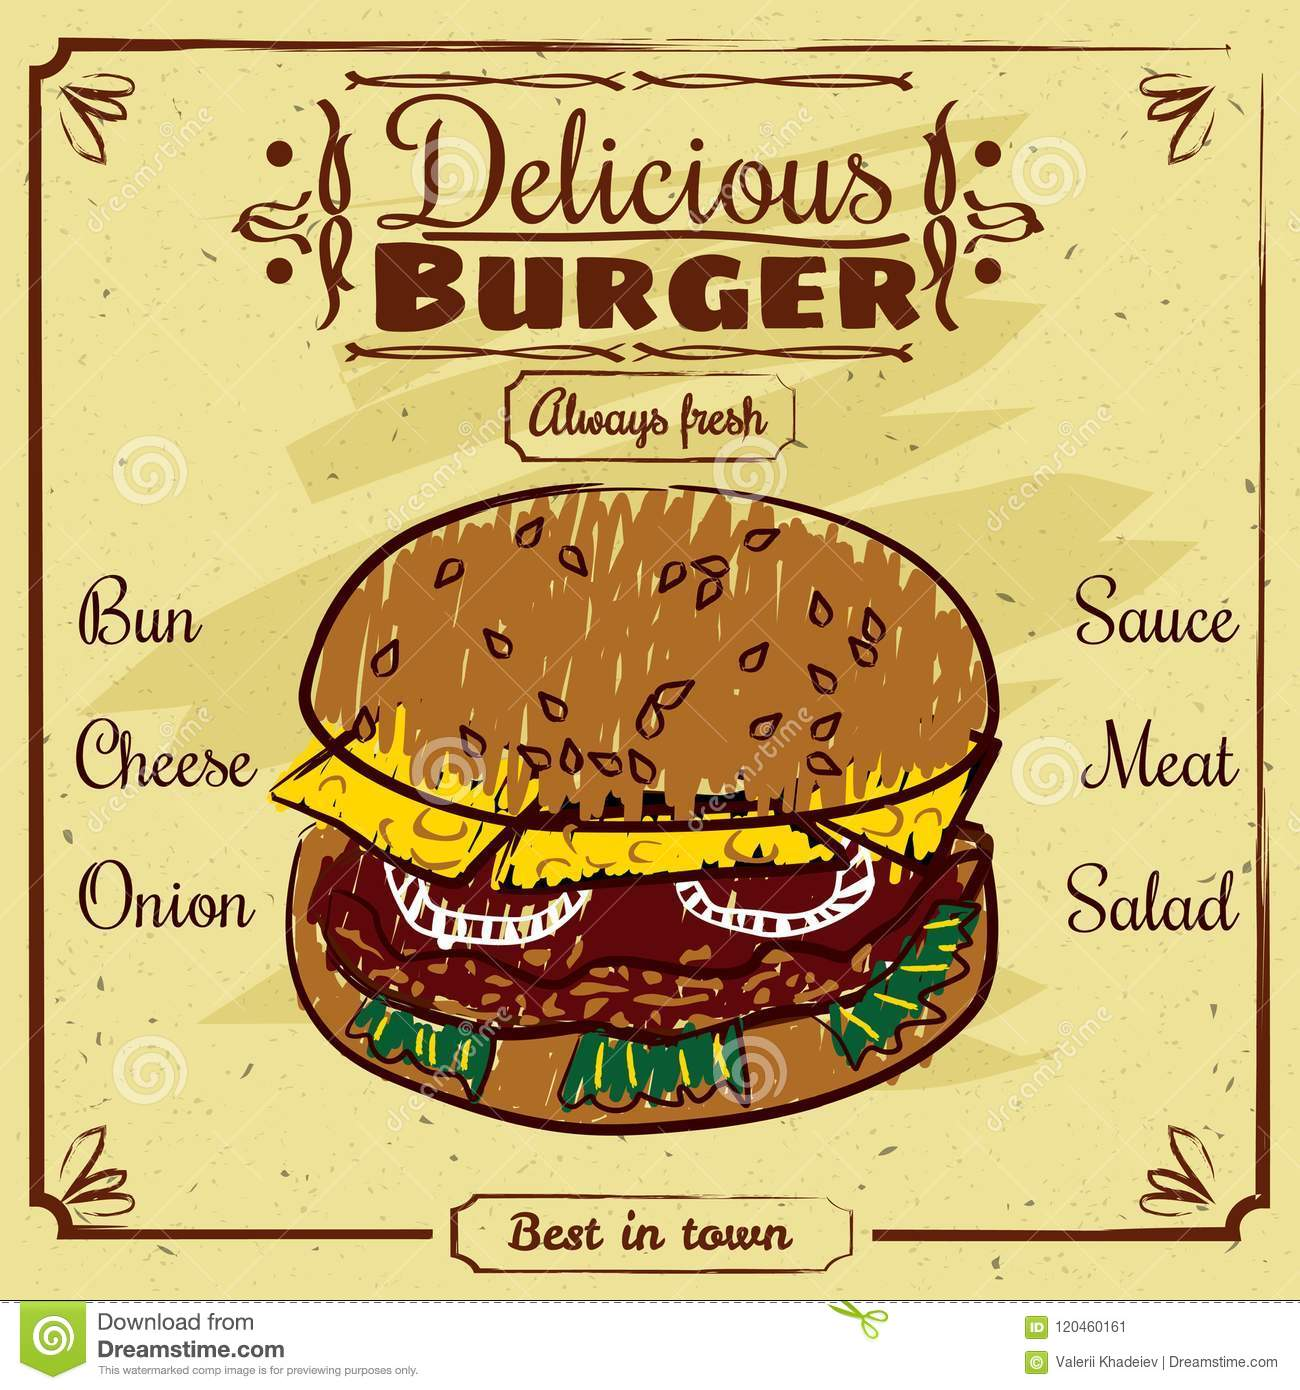 Food Menu For Restaurant And Cafe Design Template With Hand Drawn Graphic Elements In Doodle Style Vector Isolated Stock Vector Illustration Of Frame Dinner 120460161